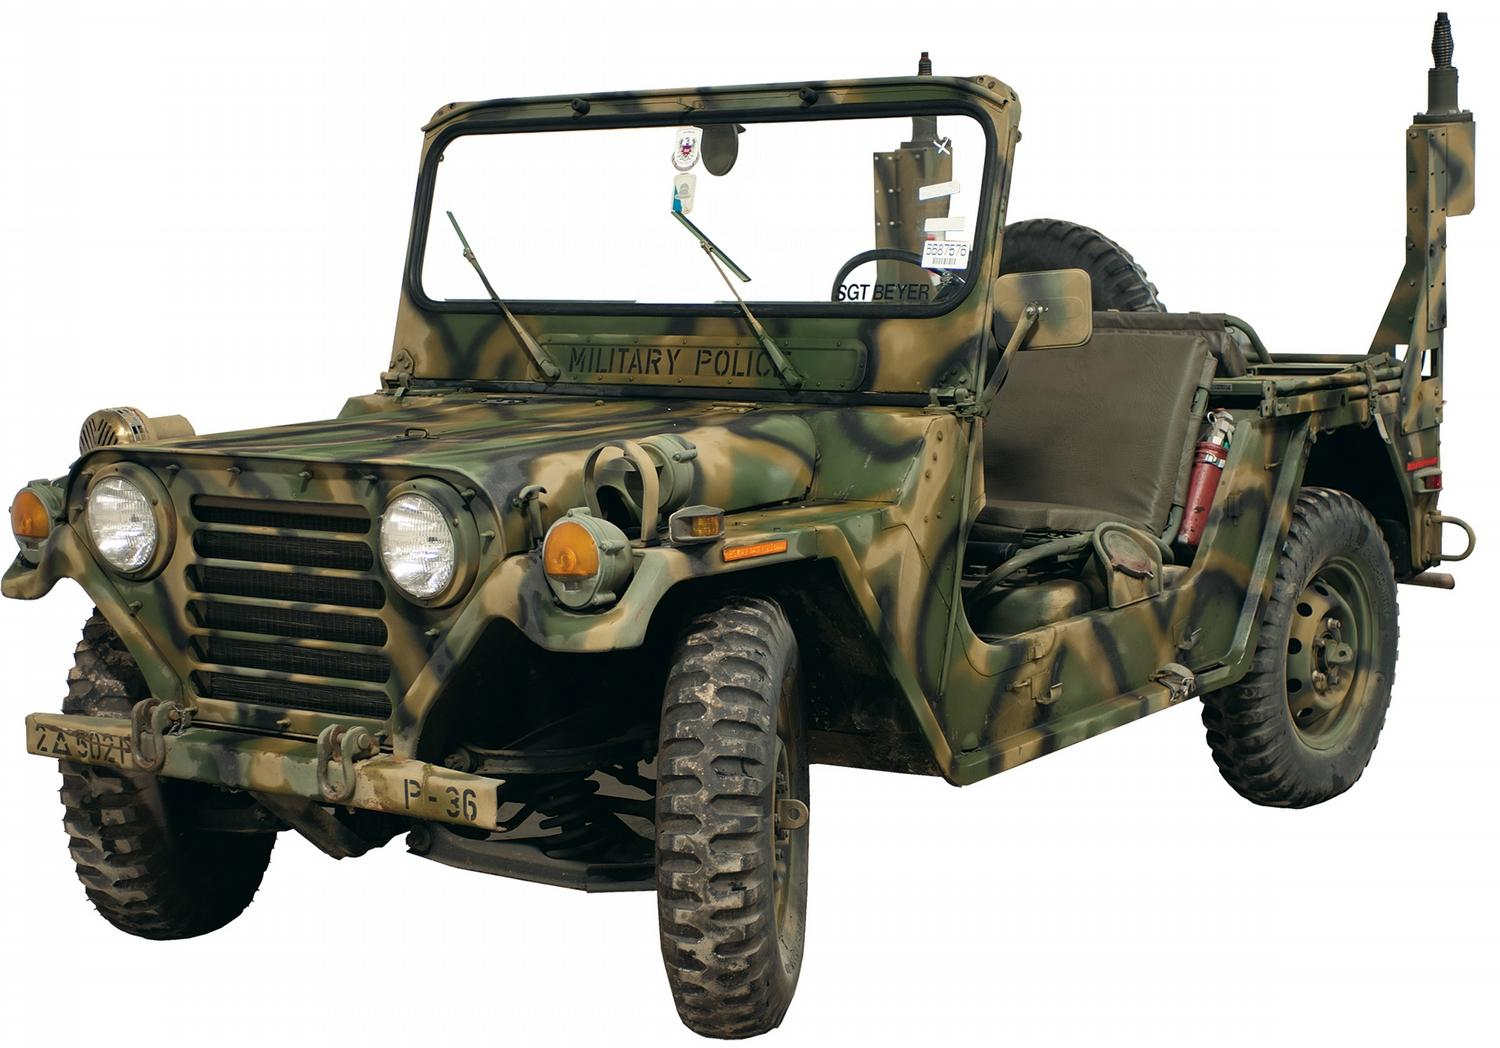 Jeep M 151 1959 - 1982 Prices in Pakistan, Pictures and ...